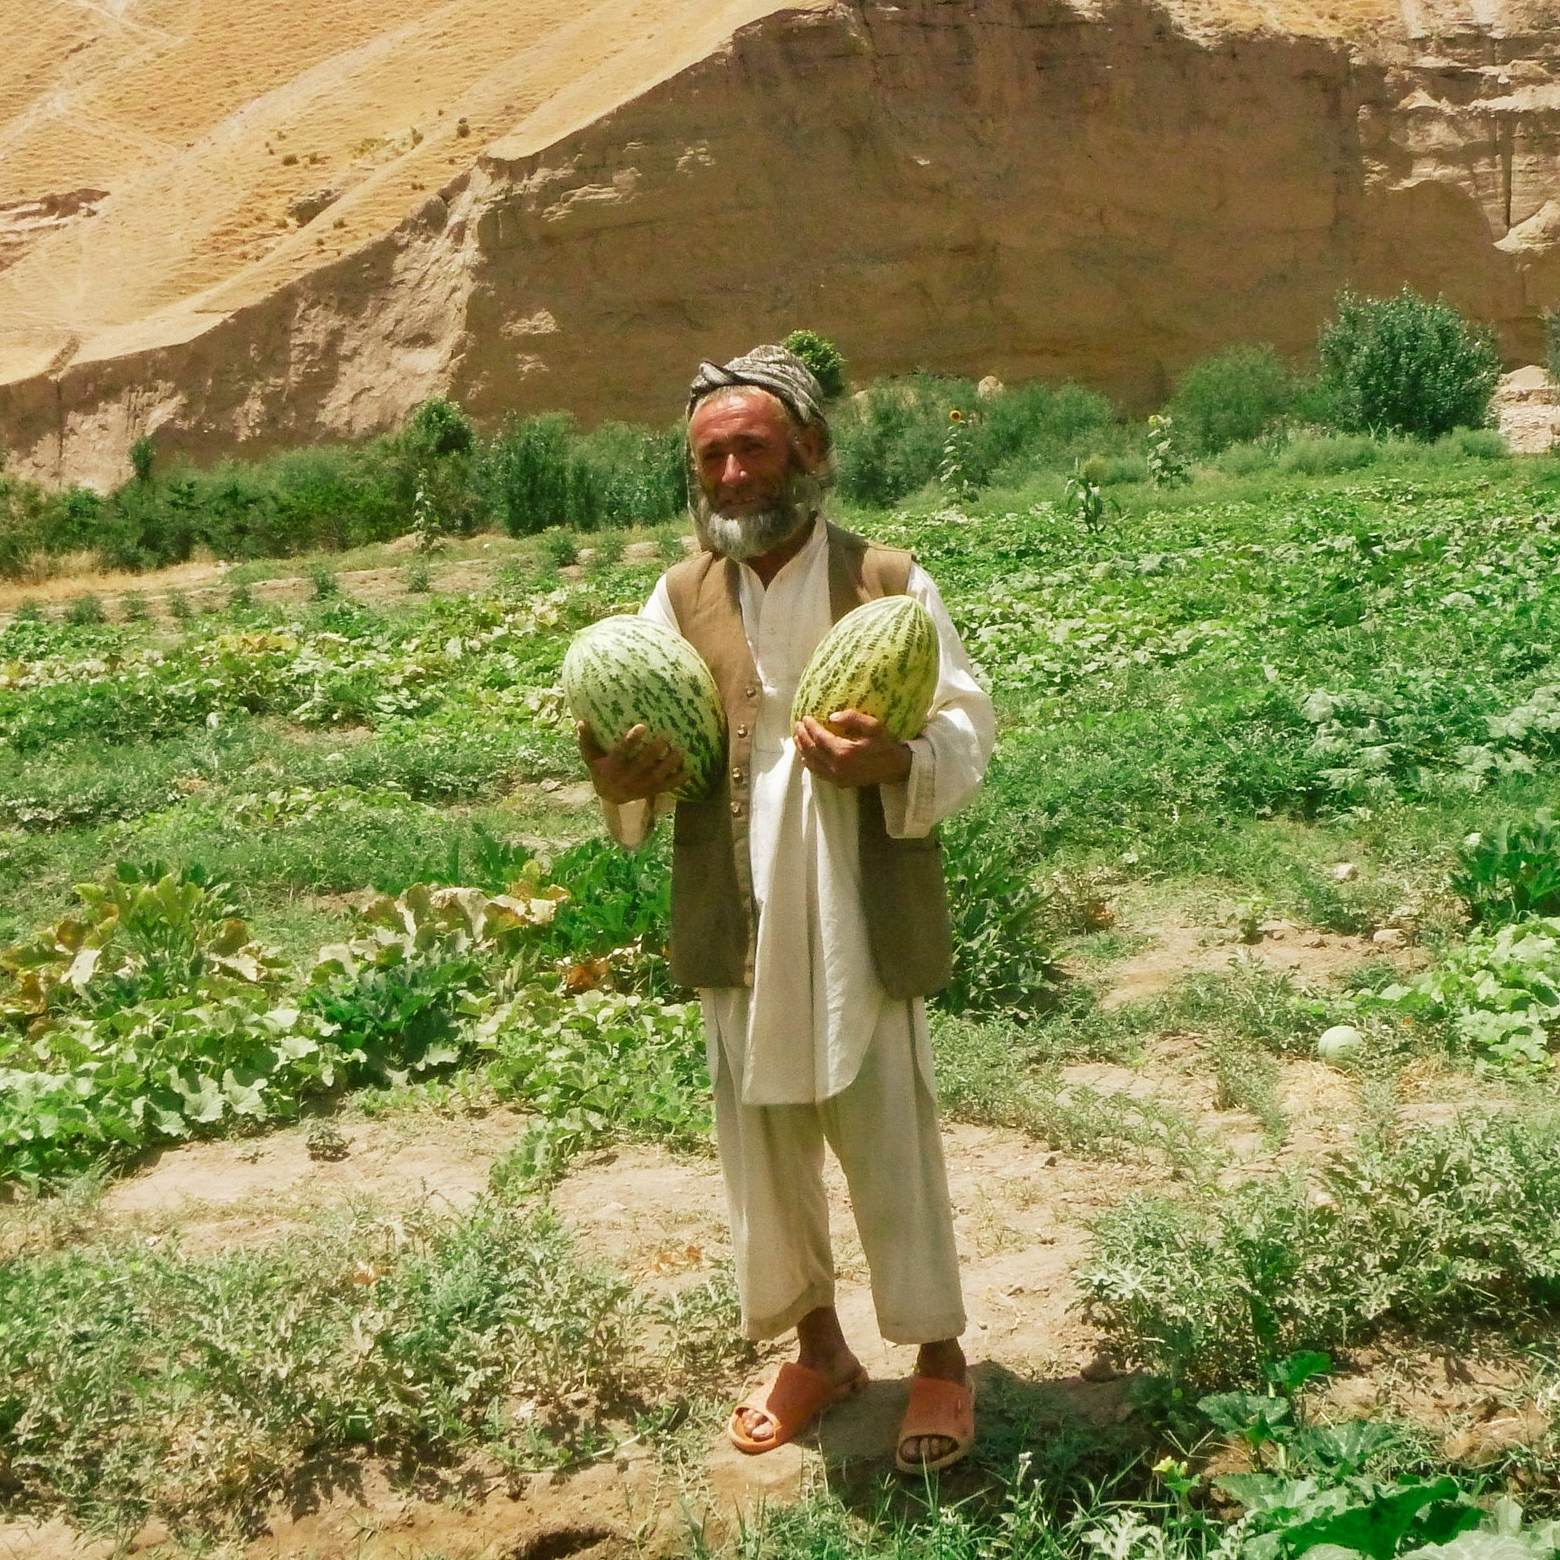 Adbul, a farmer from Pala.